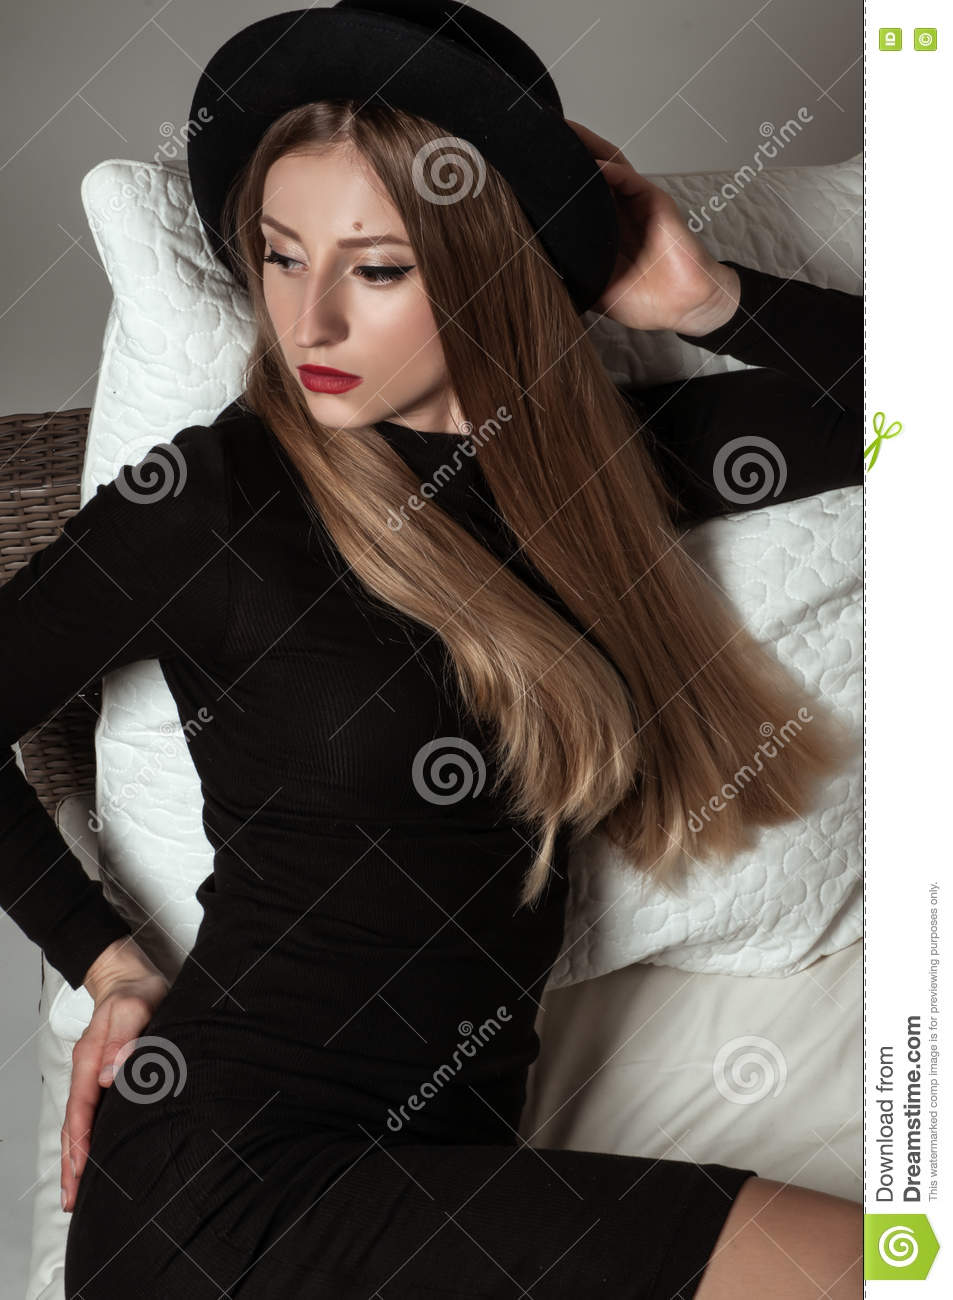 Black dress hairstyle - Beautiful Stylish Woman With Blonde Long Hair In Black Dress And Hat Stock Photo